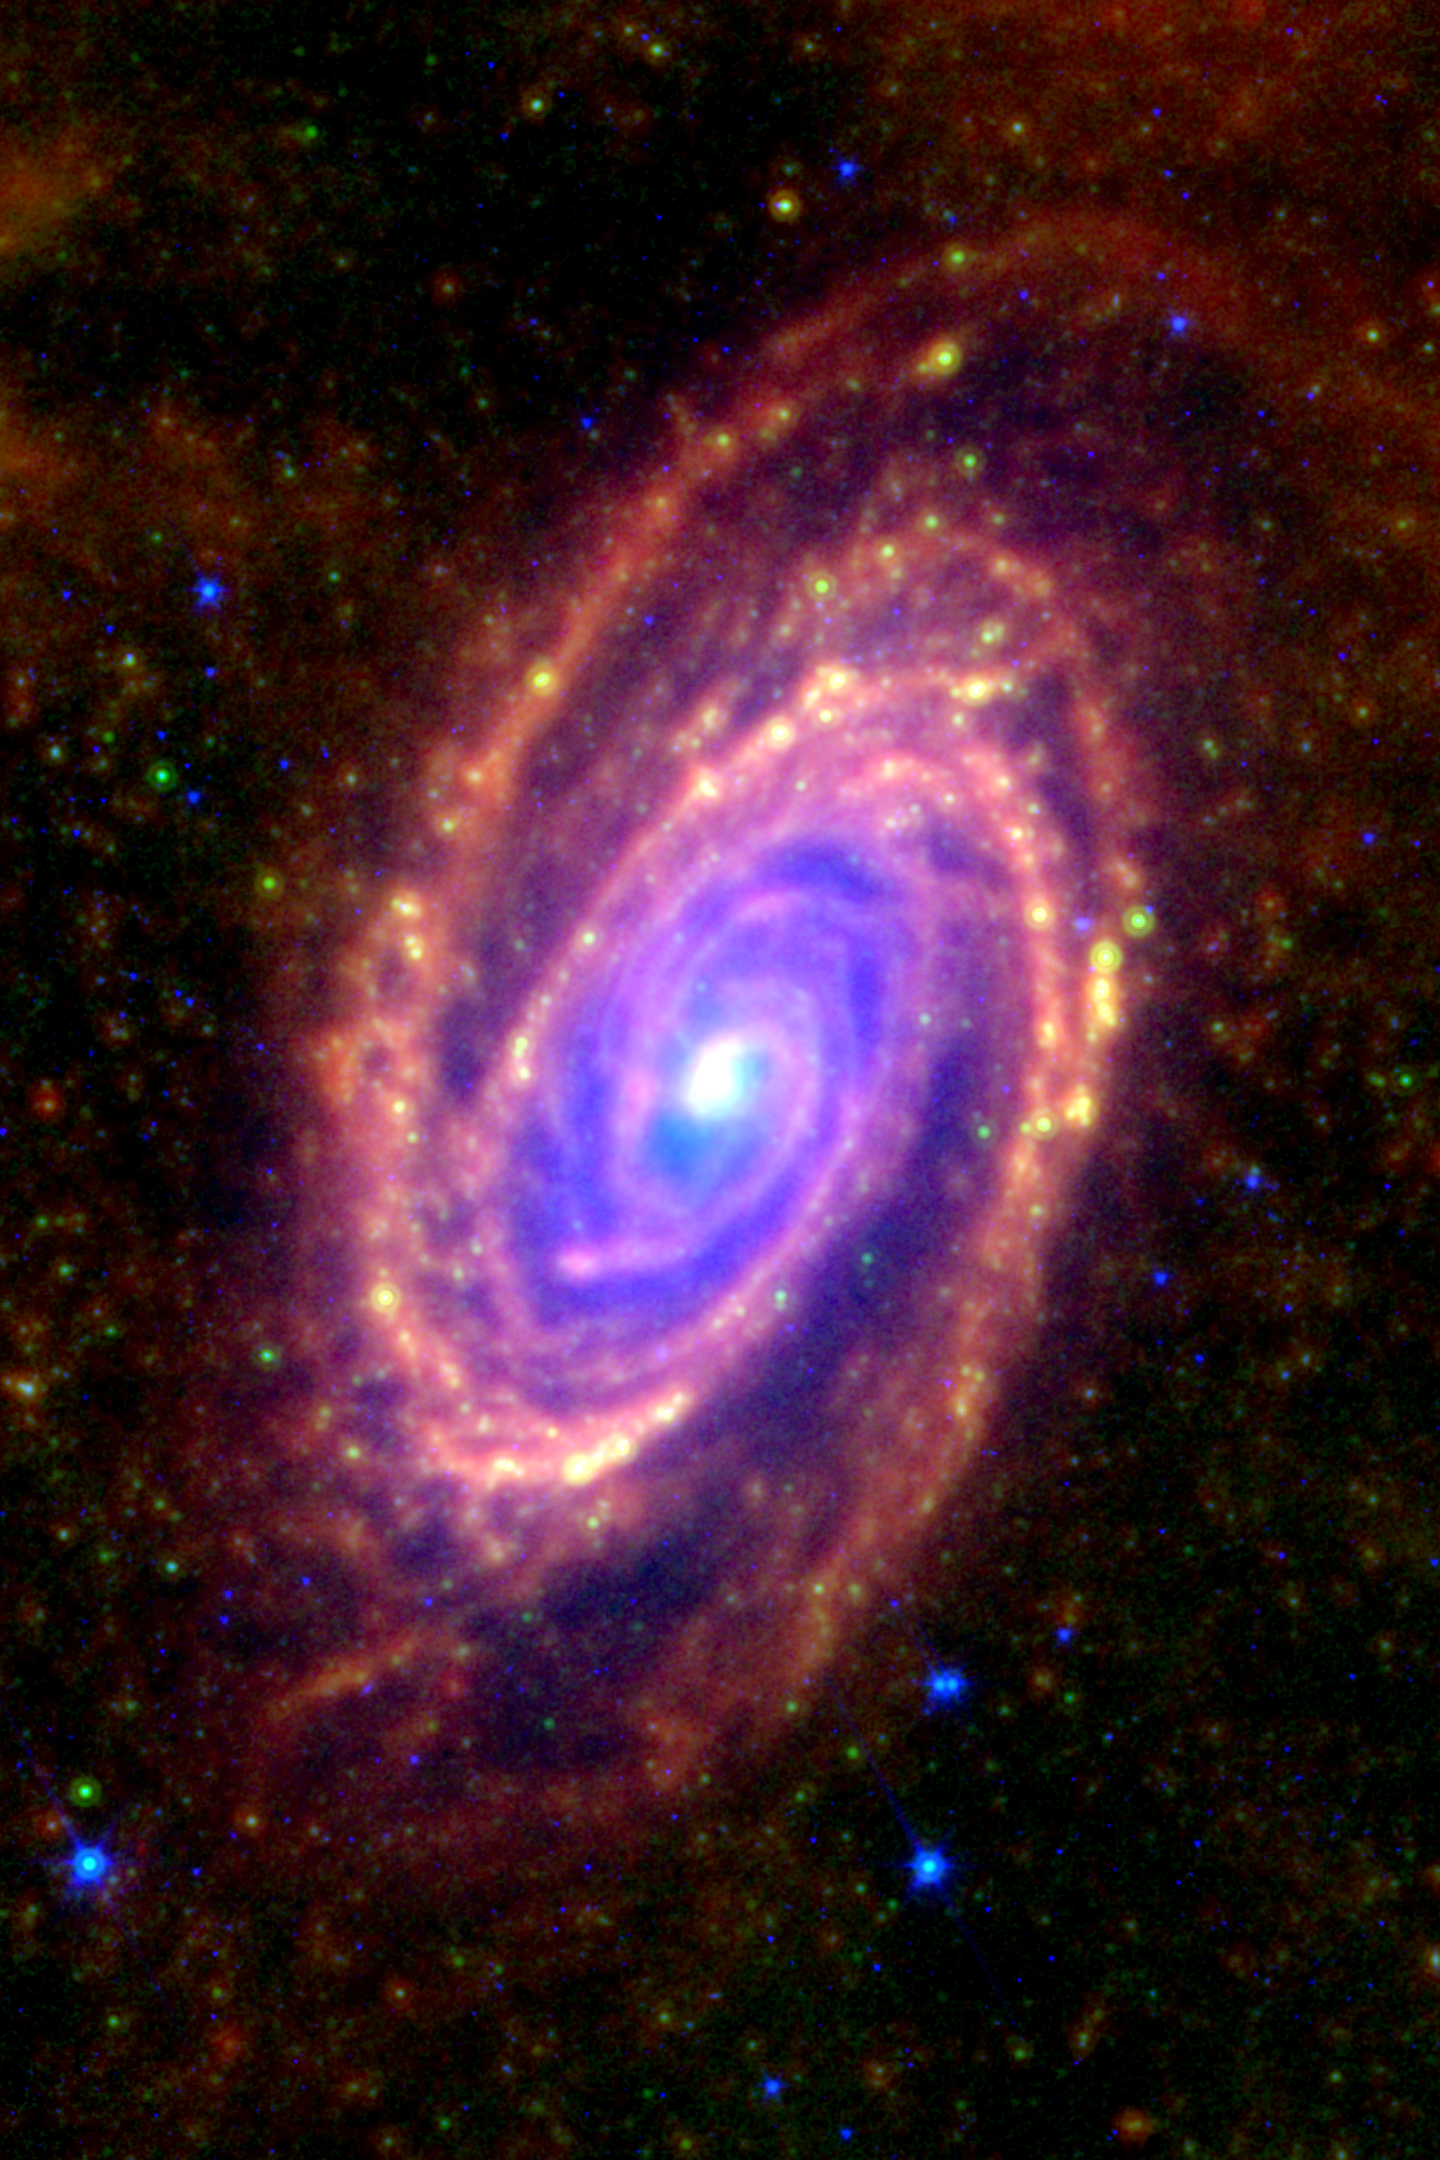 M81 (NGC 3031) as seen in the infrared